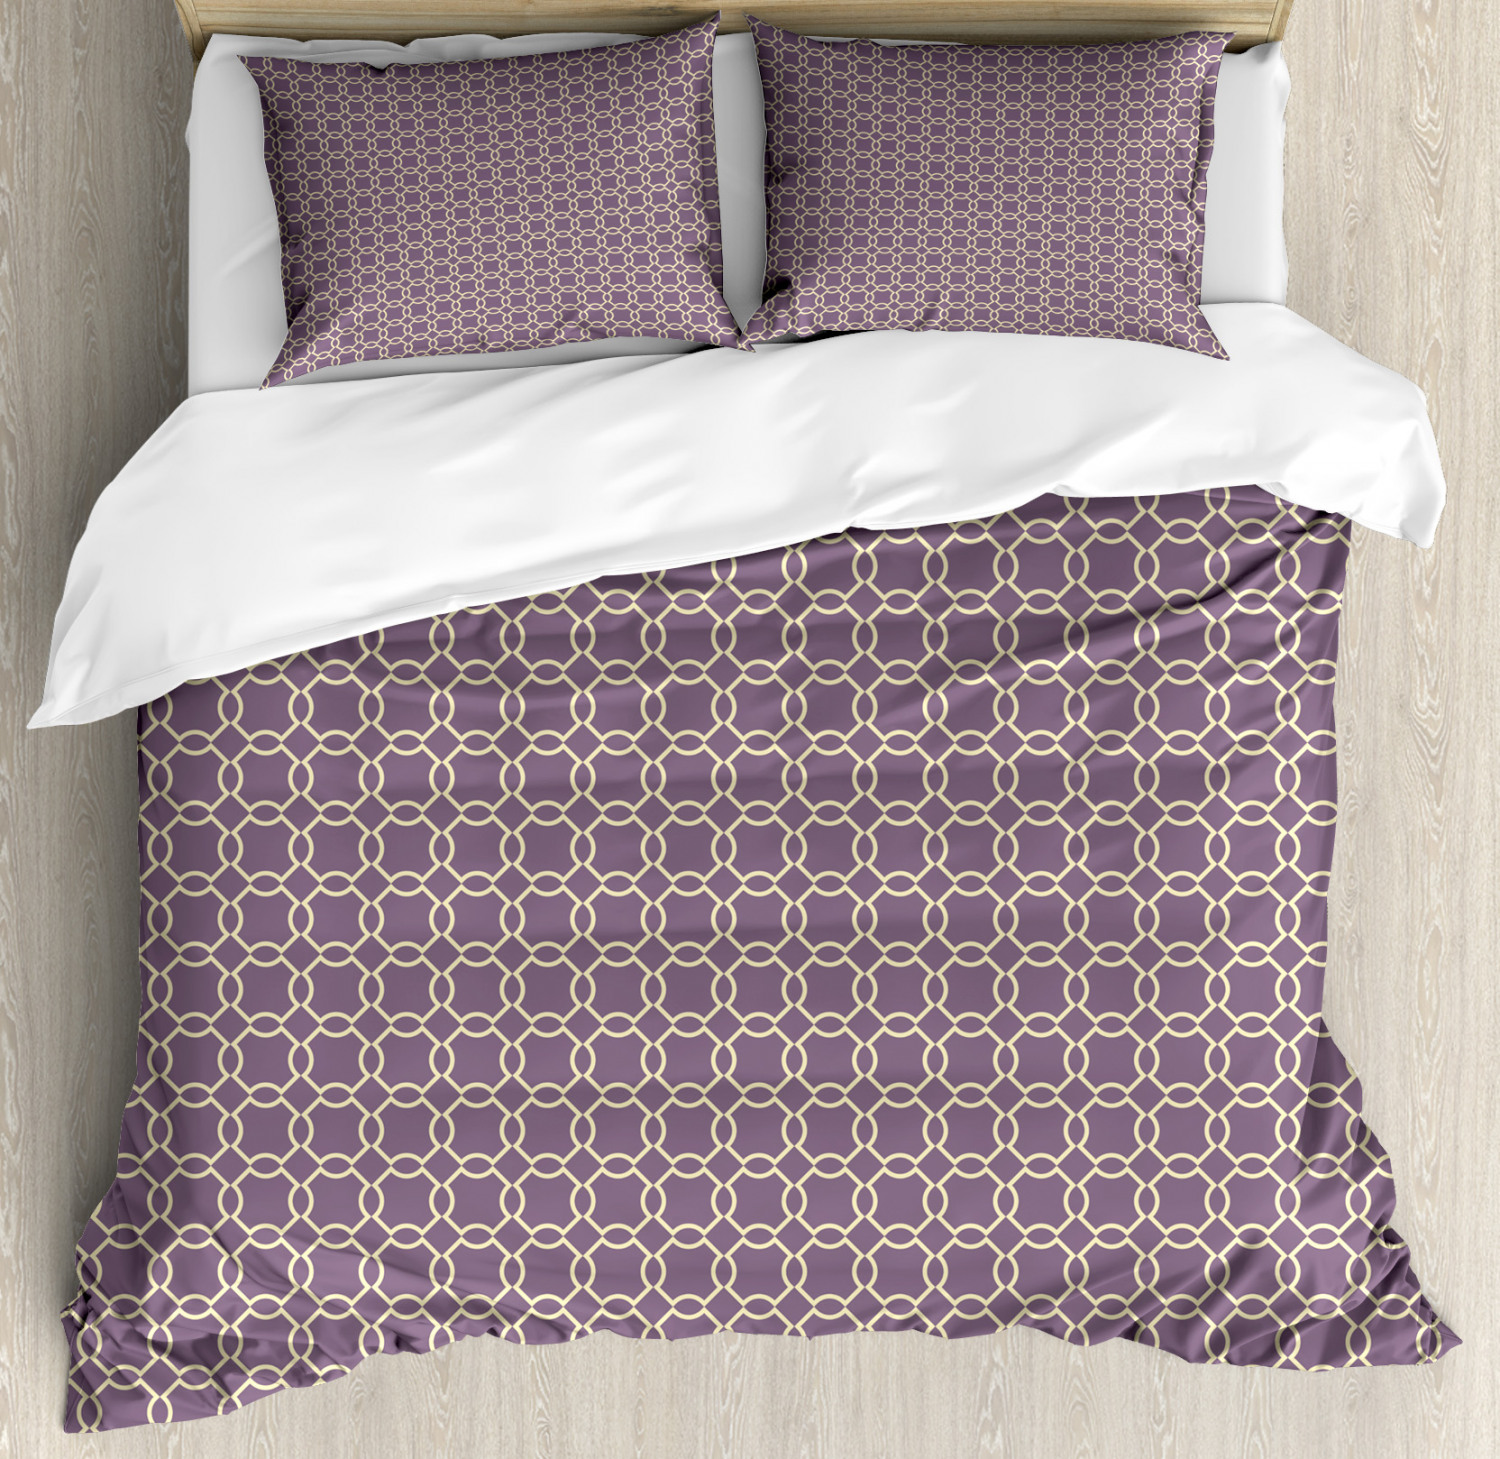 Geometric Duvet Cover Set with Pillow Shams Abstract Lines Vivid Print